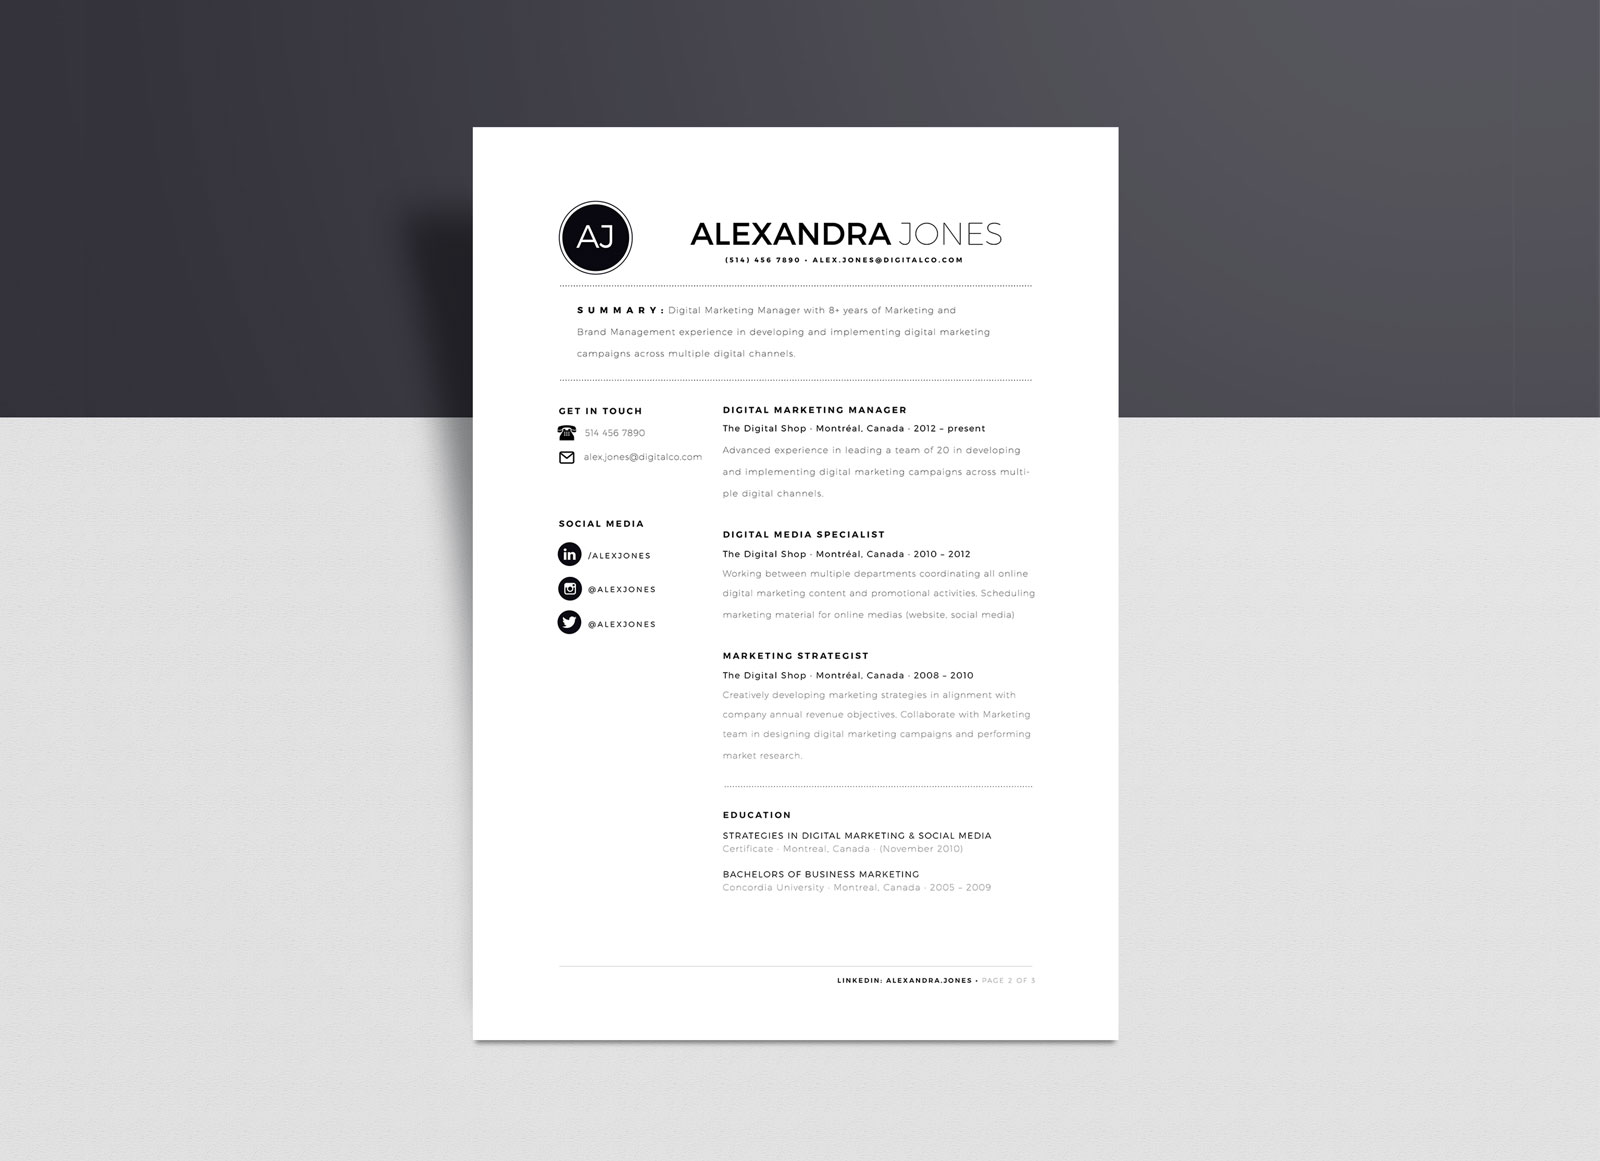 Free-Minimalistic-Resume-Template-in-INDD-Ai-Word-Format-4 T Format Resume on resume templates, resume style, resume mistakes, resume structure, resume form, resume types, resume layout, resume objectives, resume cover, resume help, resume outline, resume references, resume for cna with experience, resume skills, resume examples, resume font, resume builder, resume design, resume categories, resume for high school student no experience,